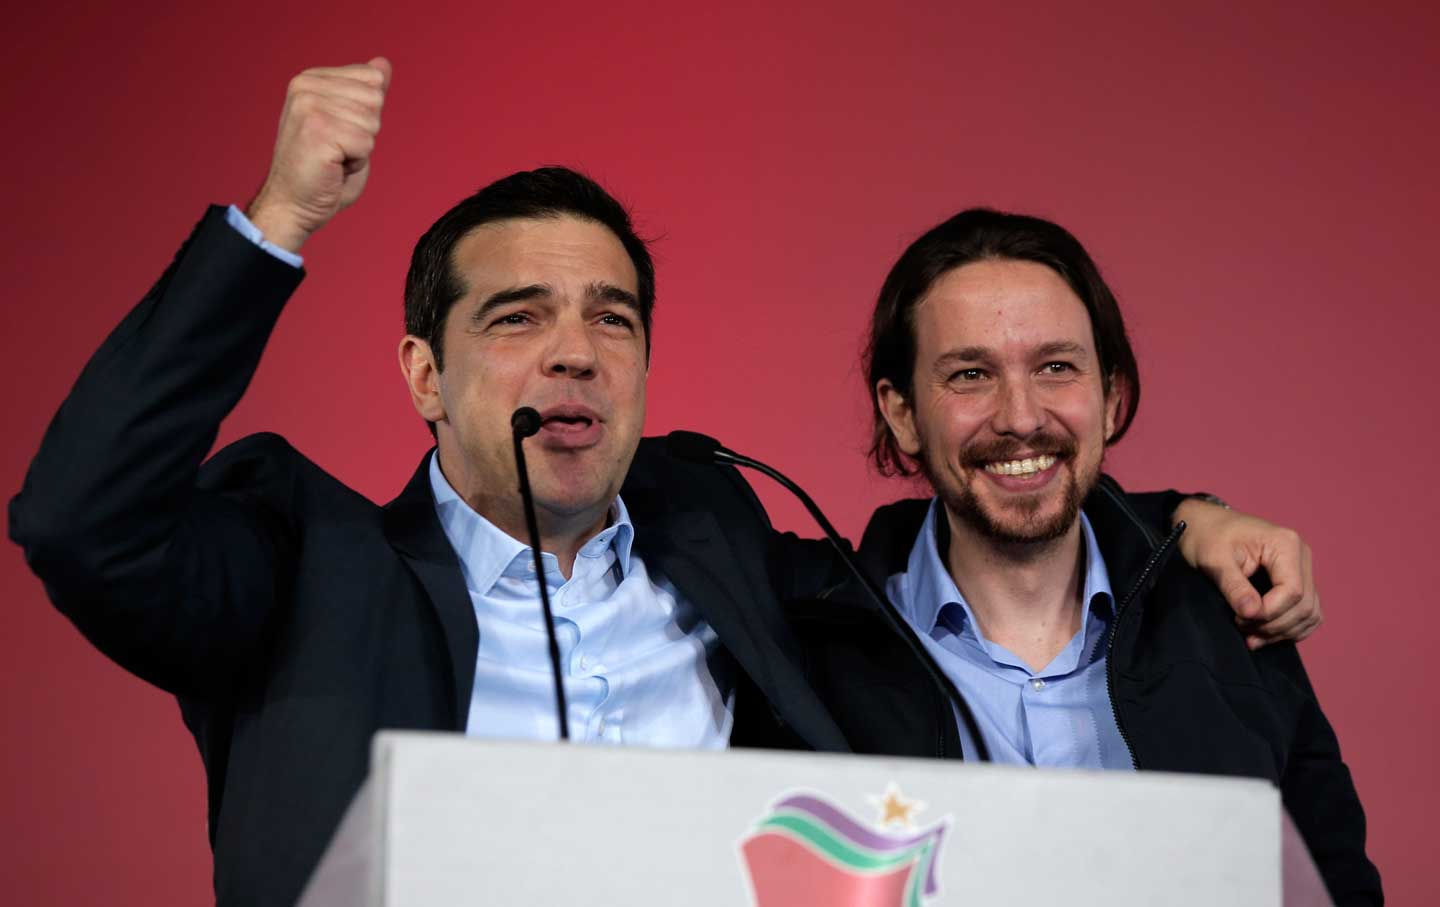 Tsipras and Iglesias